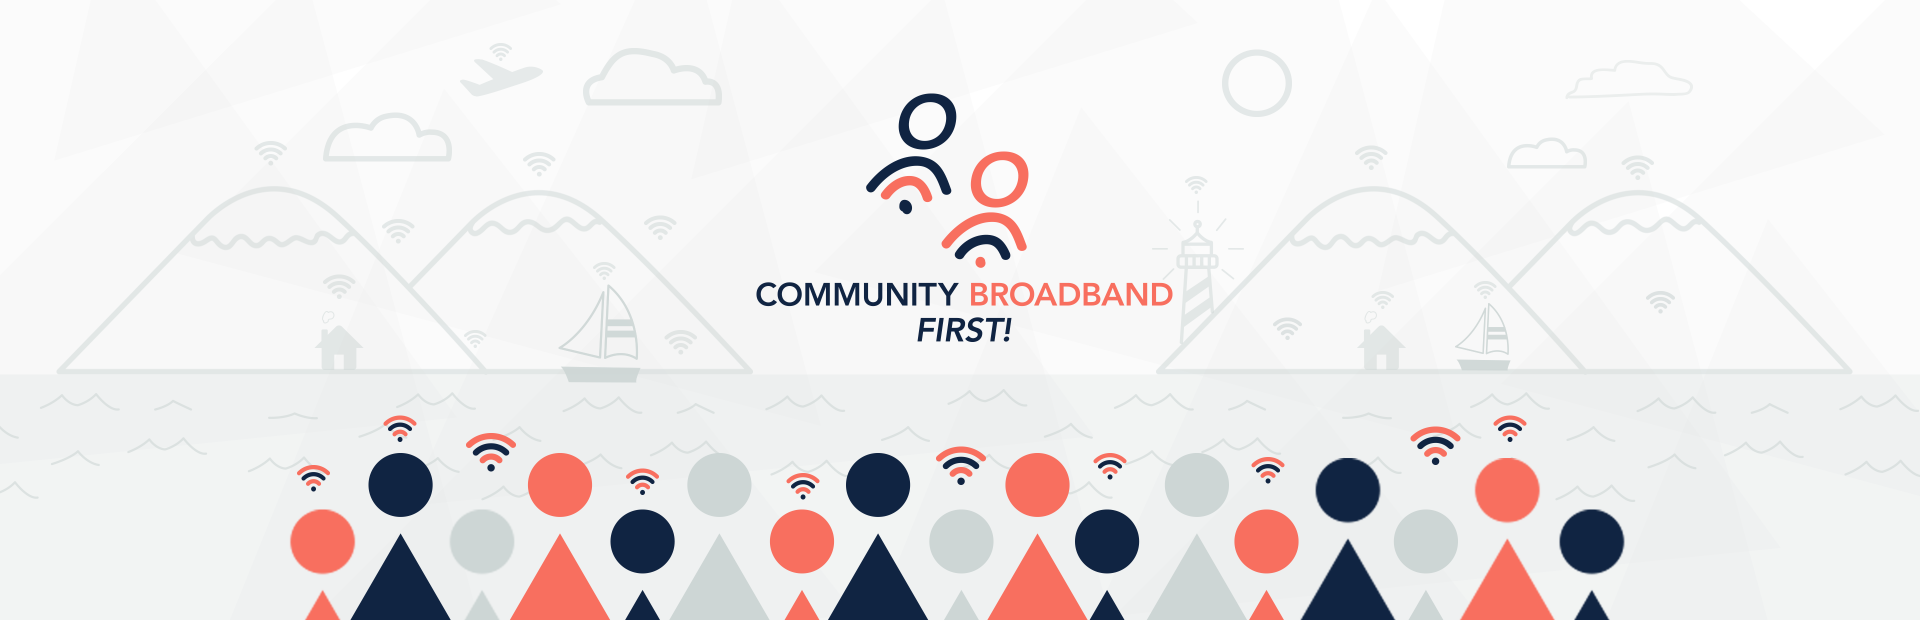 Community Broadband First